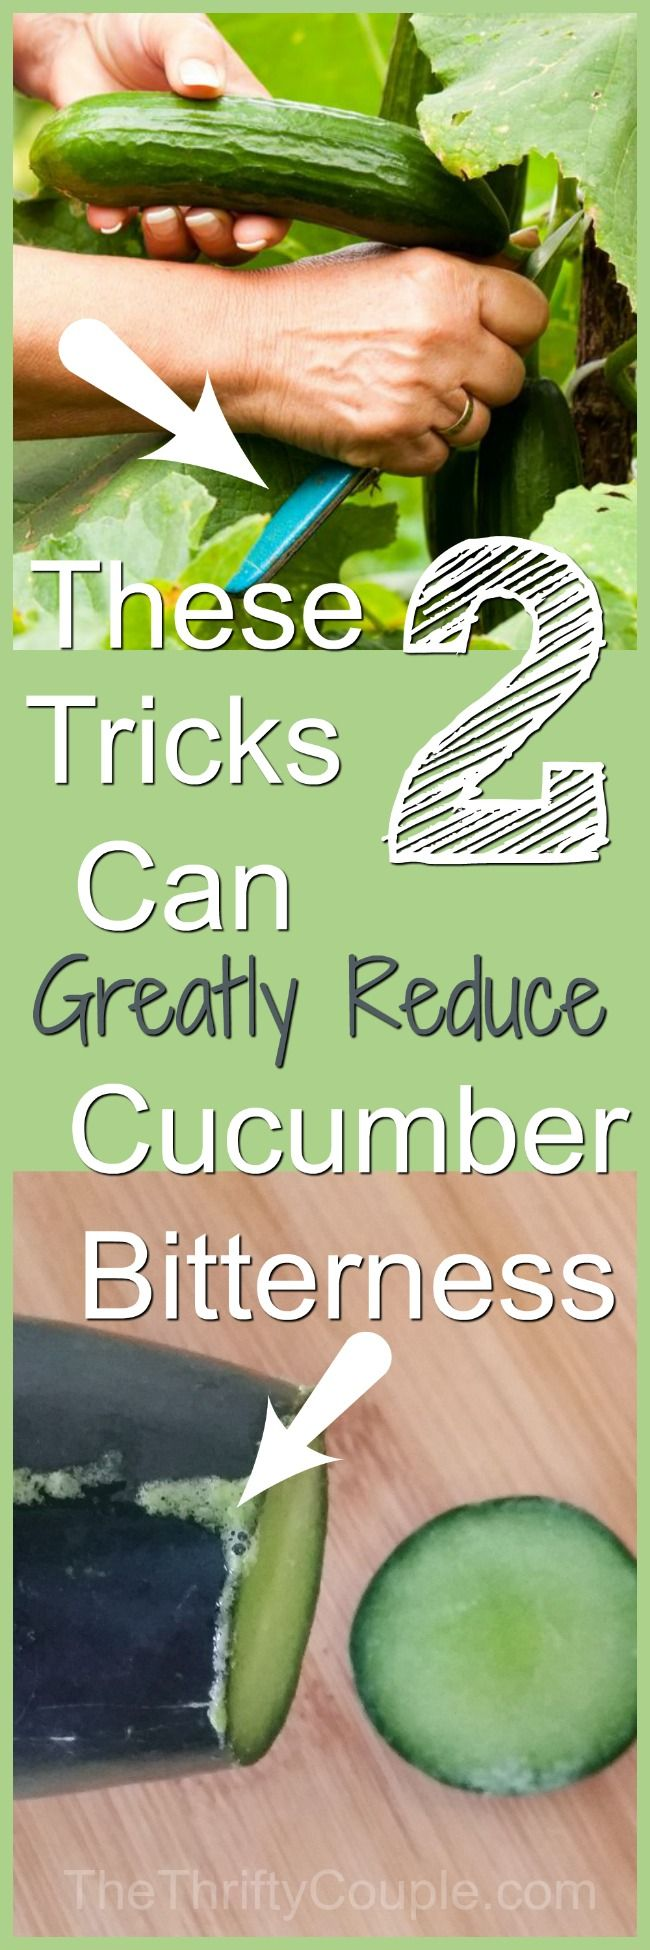 4 Steps on How To Reduce Cucumber Bitterness